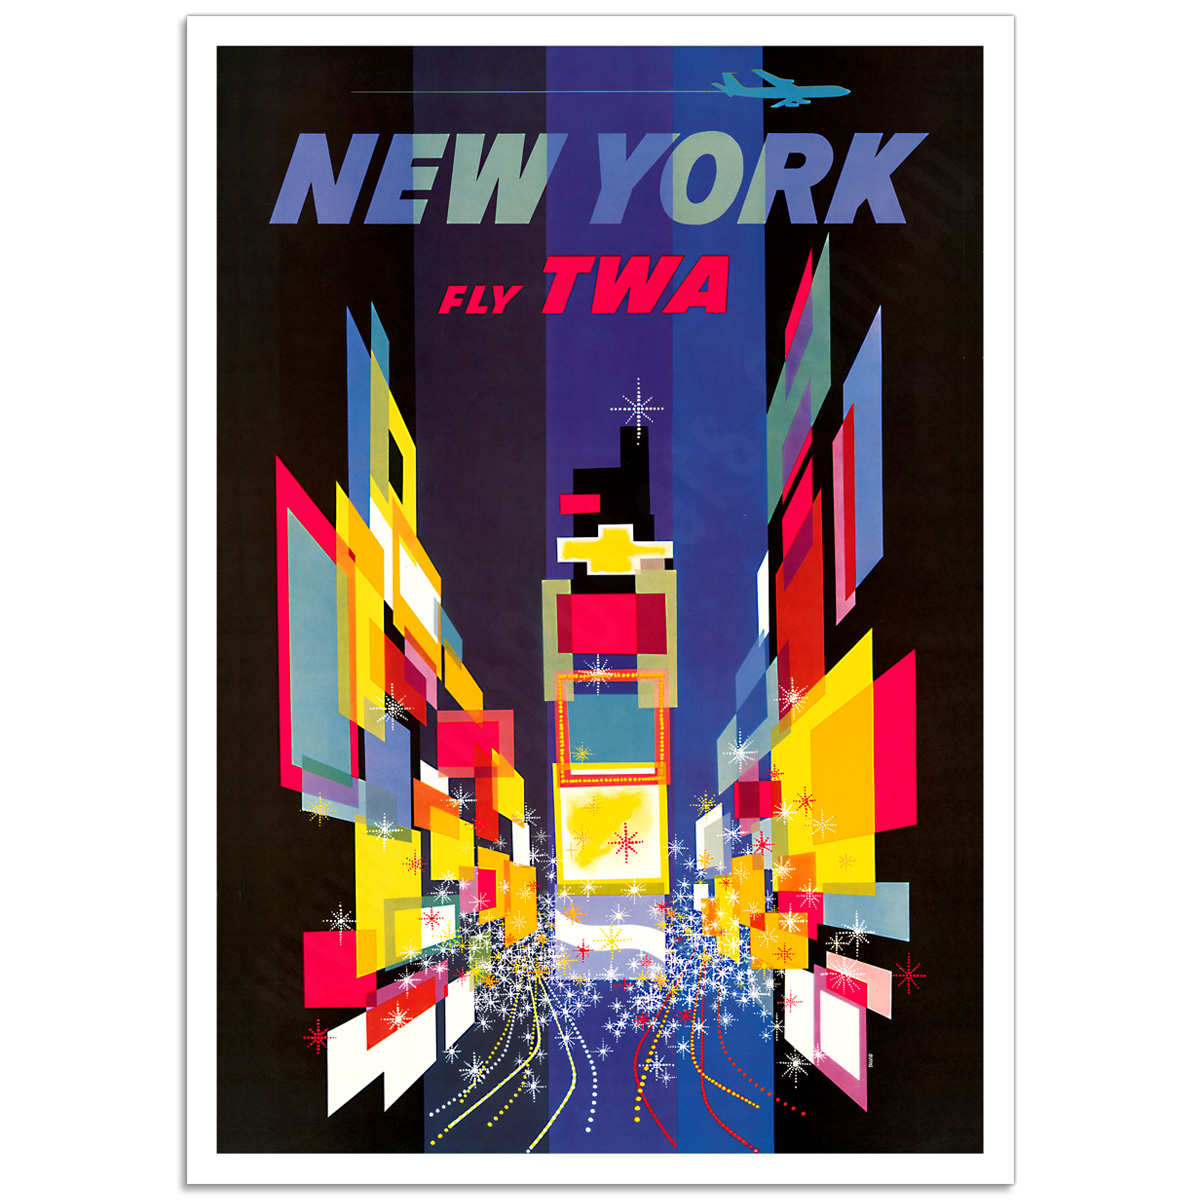 Vintage Travel Trailers: TWA - New York - Times Square